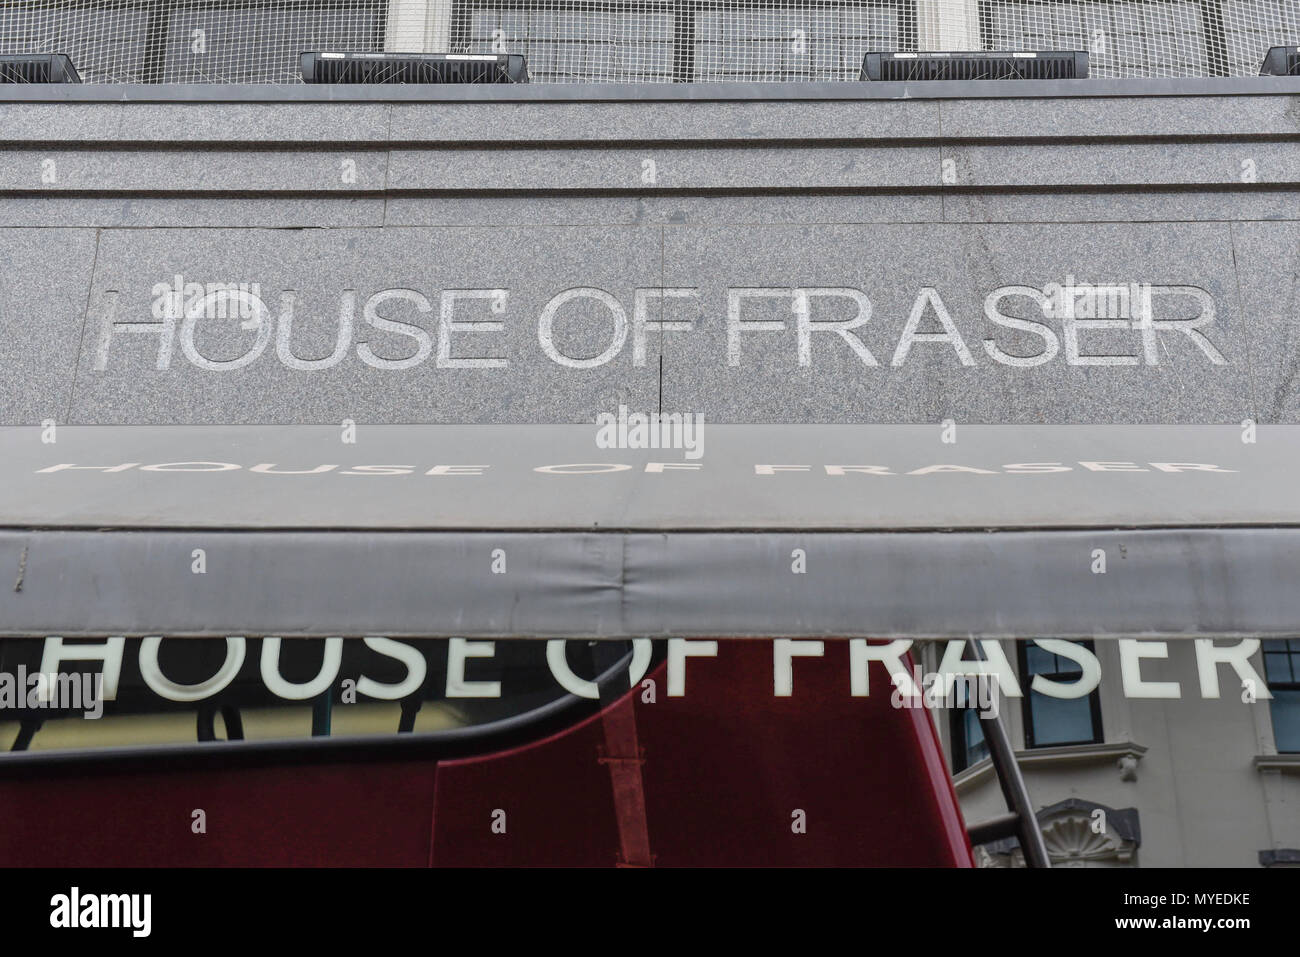 London, UK.  7 June 2018.  Exterior of the flagship store of House of Fraser in Oxford Street.  It is reported that the department store chain House of Fraser plans to close 31 of its 59 stores, with 6,000 jobs affected.  The flagship store will close in early 2019 if the rescue deal proceeds, which requires approval by 75% of its creditors as part of company voluntary arrangements.  Credit: Stephen Chung / Alamy Live News - Stock Image